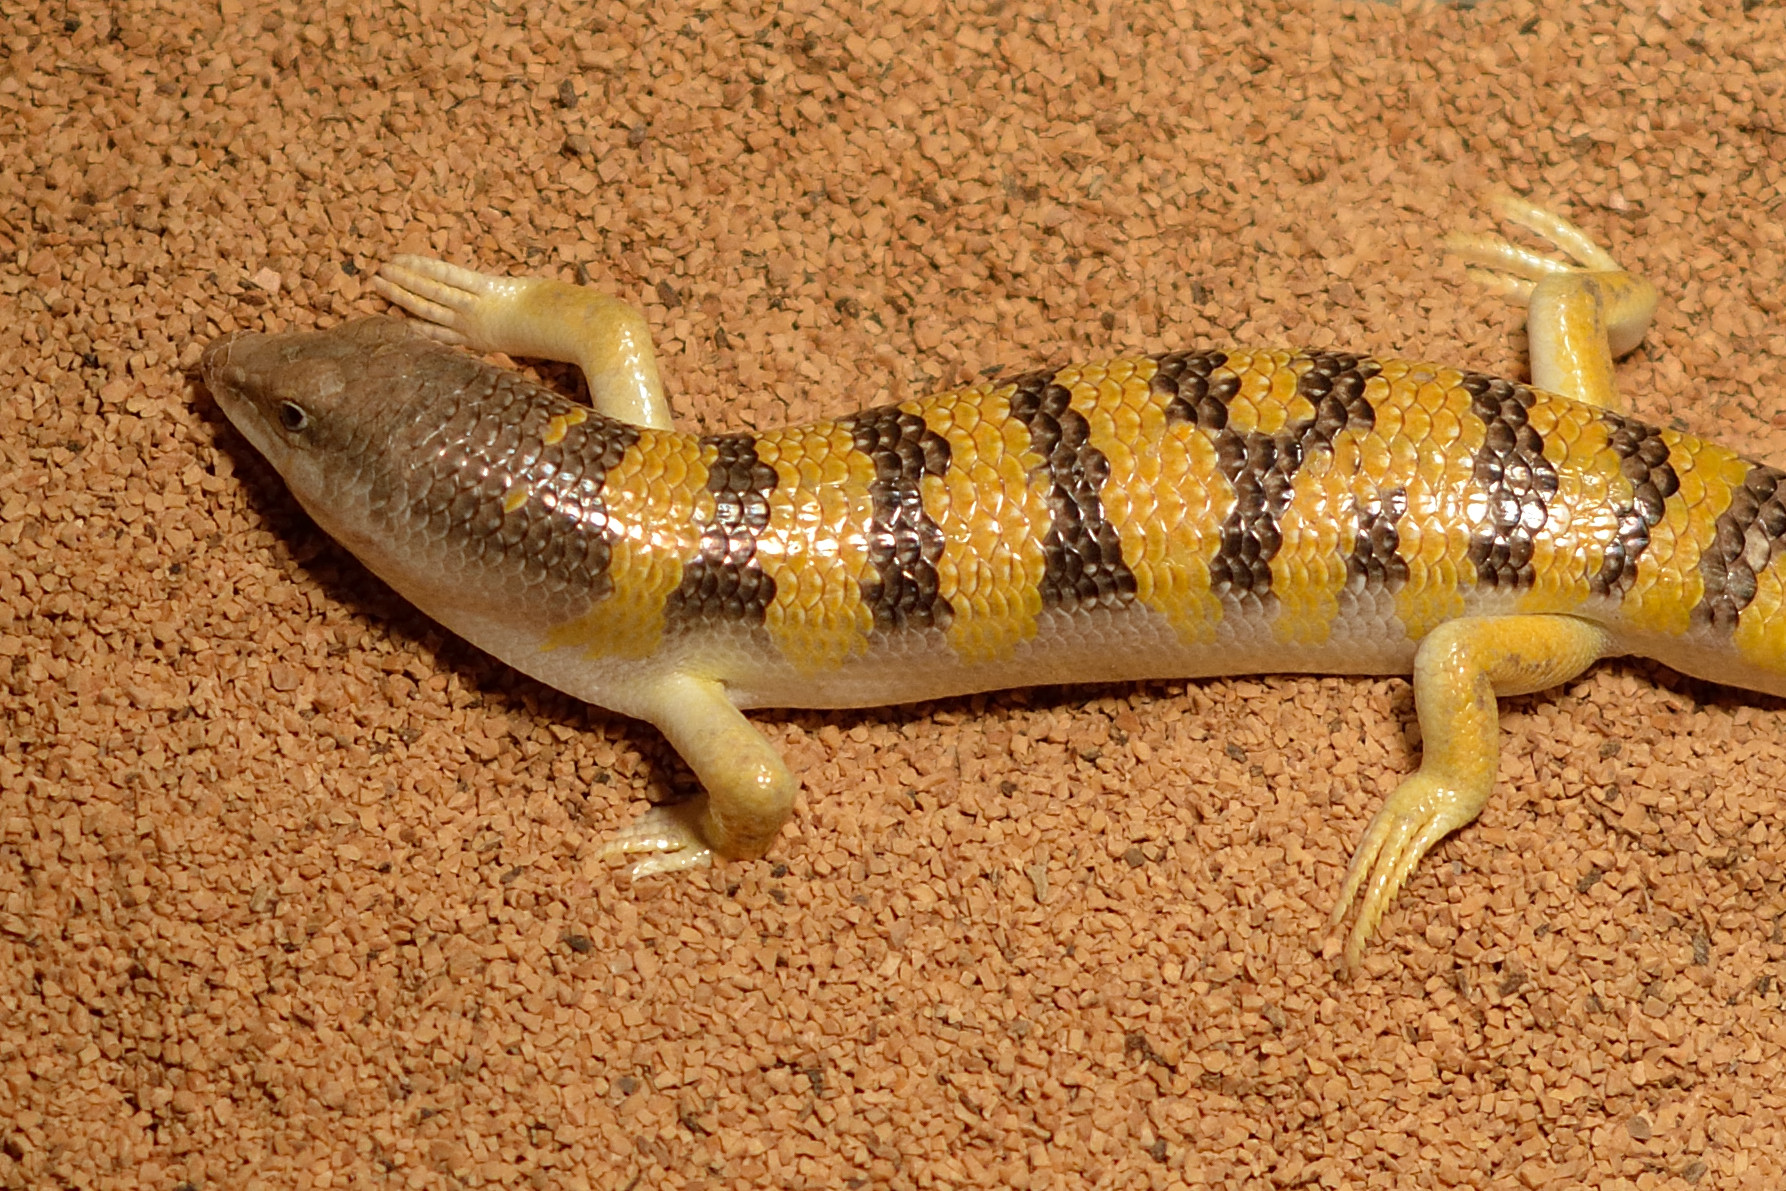 How to Care for a Sandfish Skink